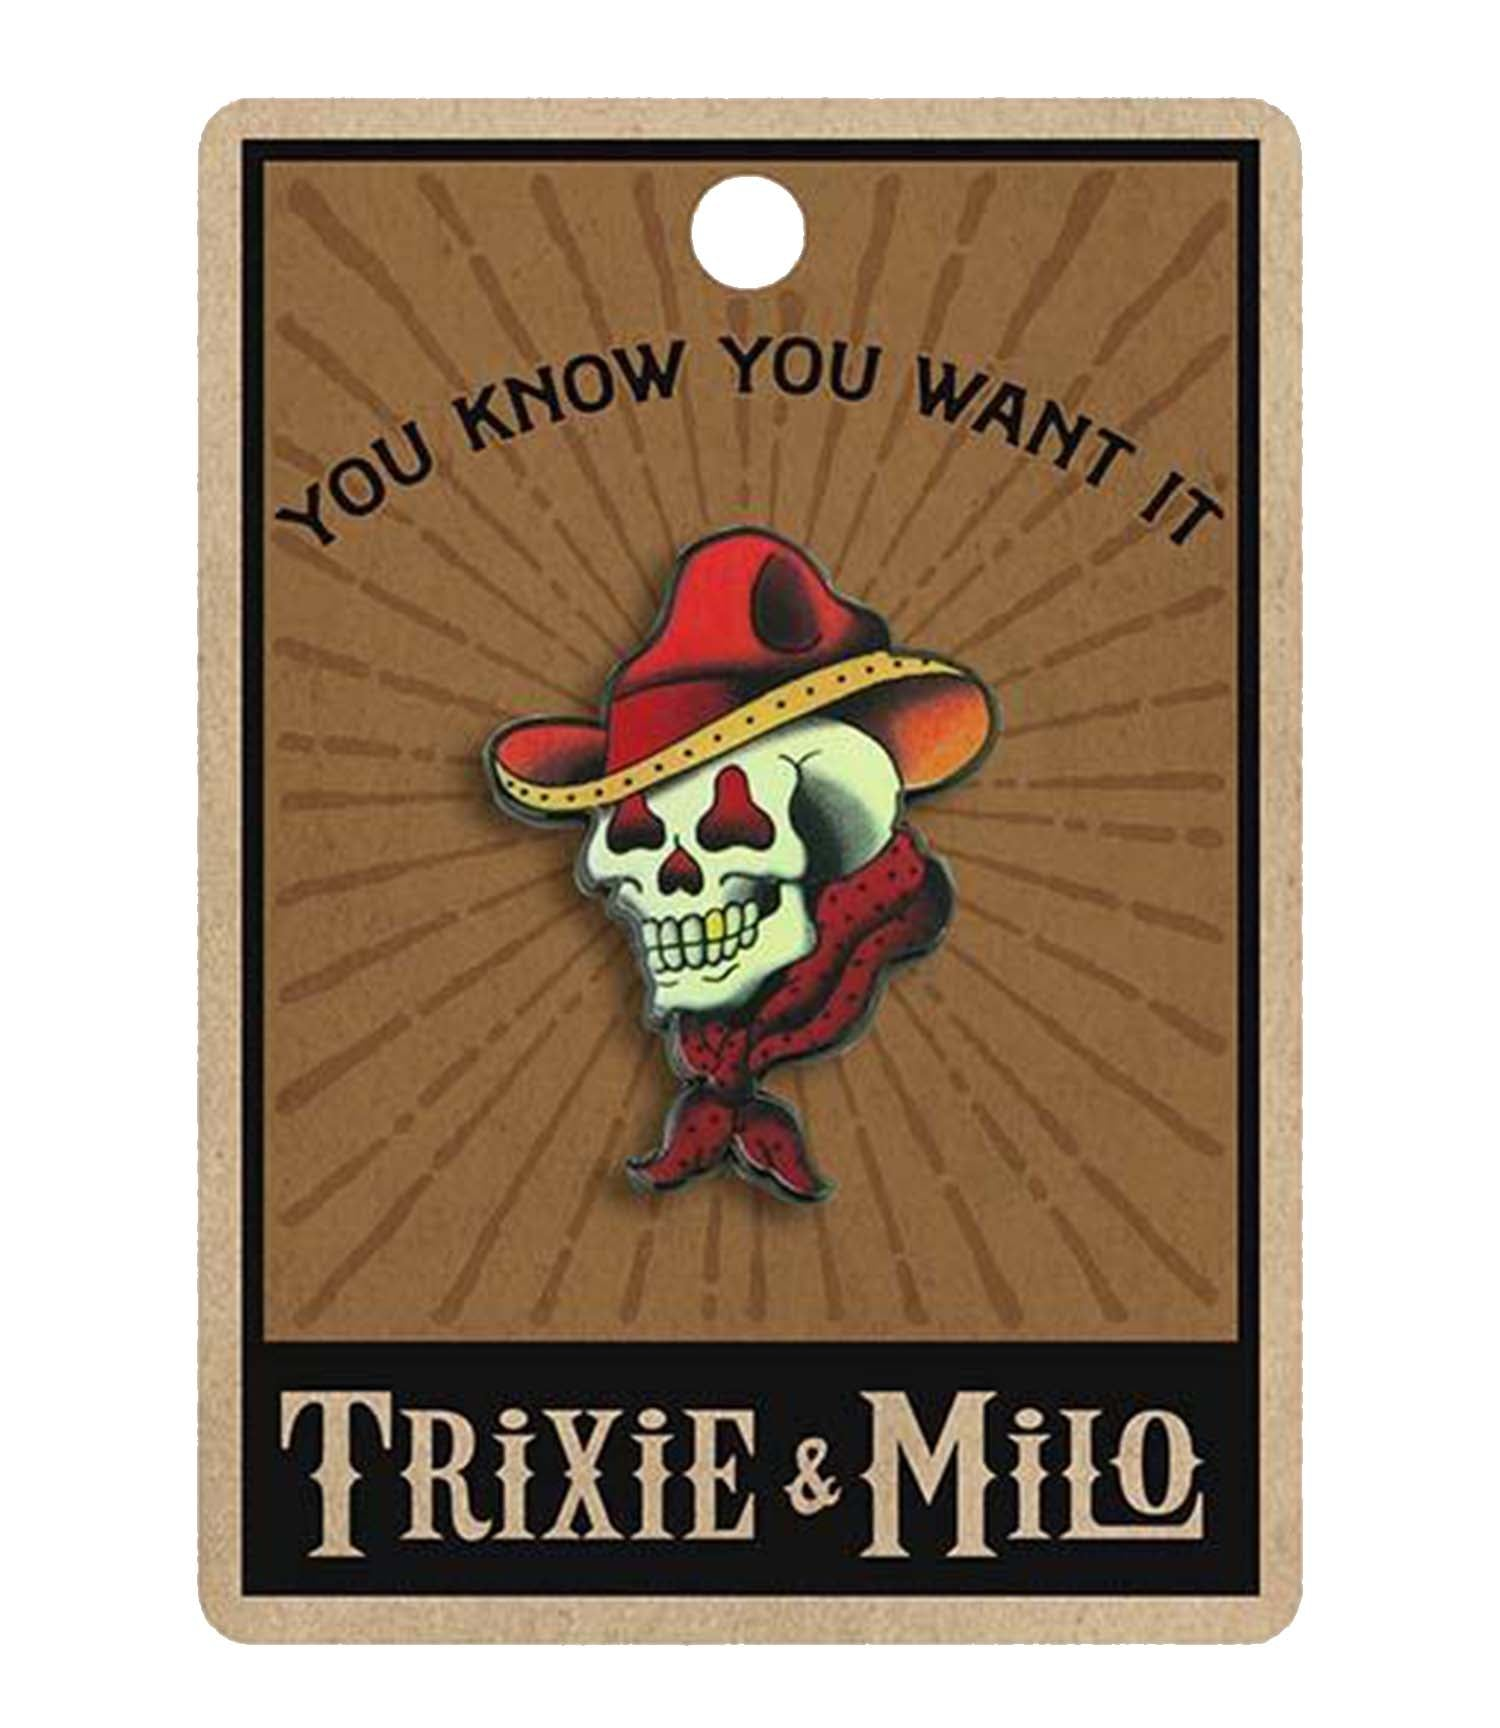 The TATTOO COWBOY SKULL Enamel Pin